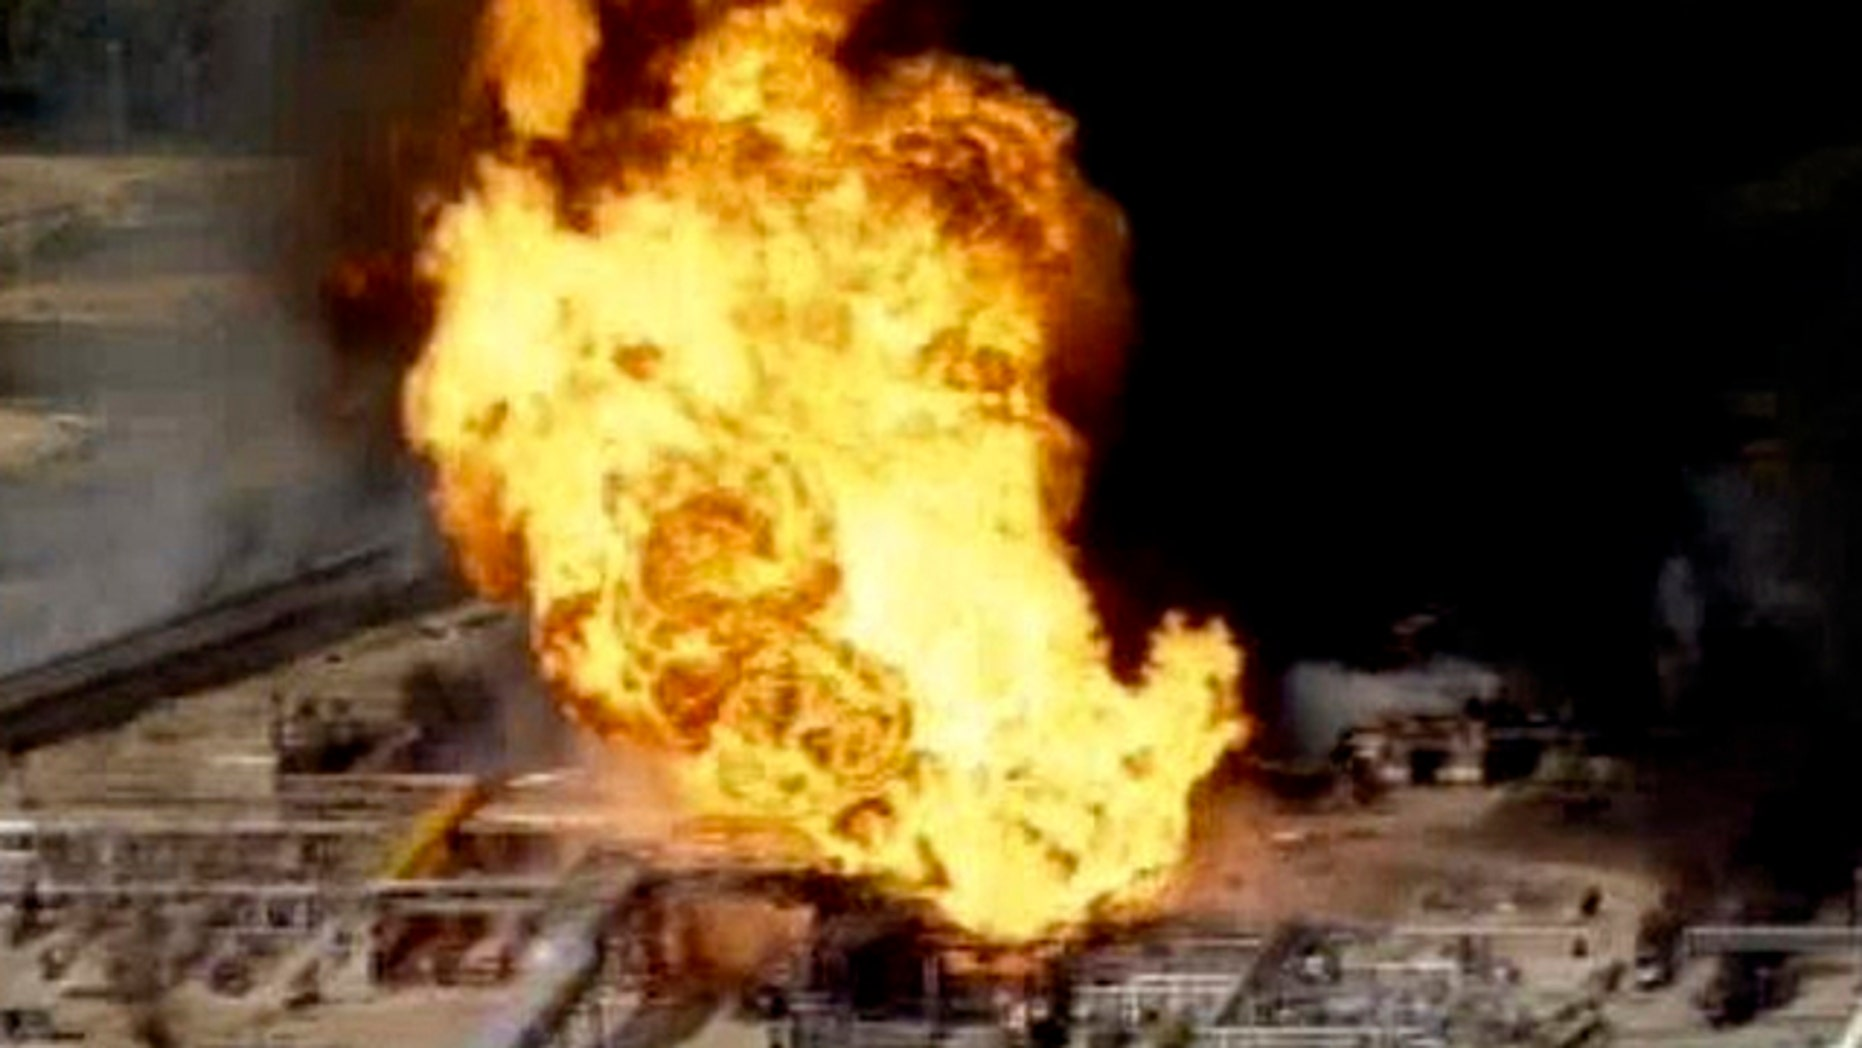 Feb. 8, 2011: This frame grab from video made available by KPRC-TV, shows a fire burning at the Mont Belvieu petroleum plant east of Houston.